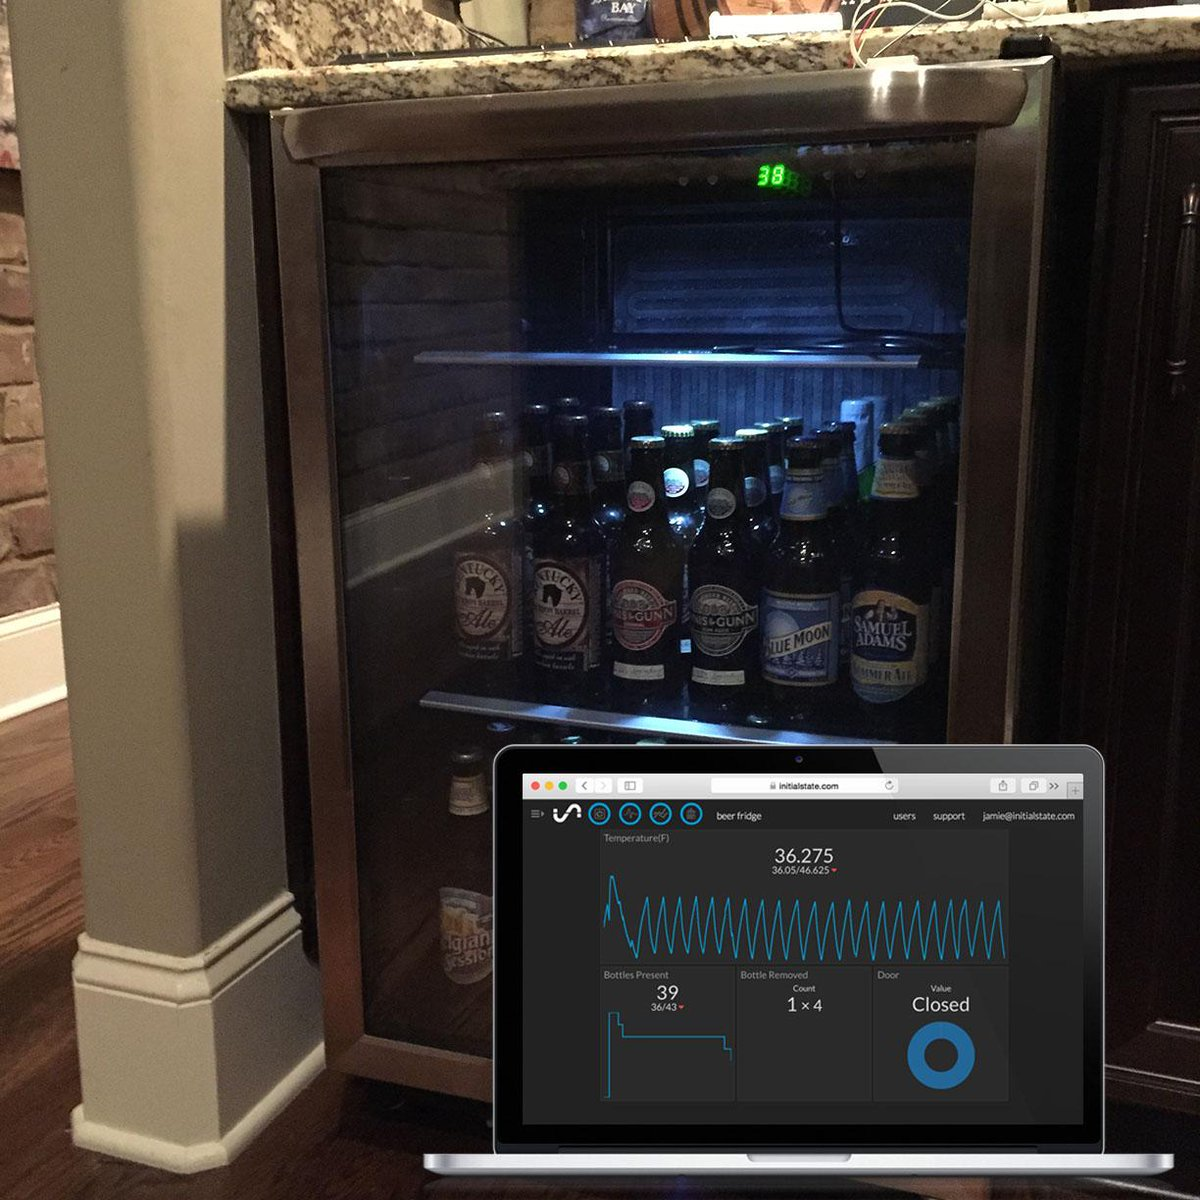 Create a Smart Beer Fridge with a @Raspberry_Pi via @make http://t.co/yFbGCV8CFd http://t.co/aHnl0AOTXe